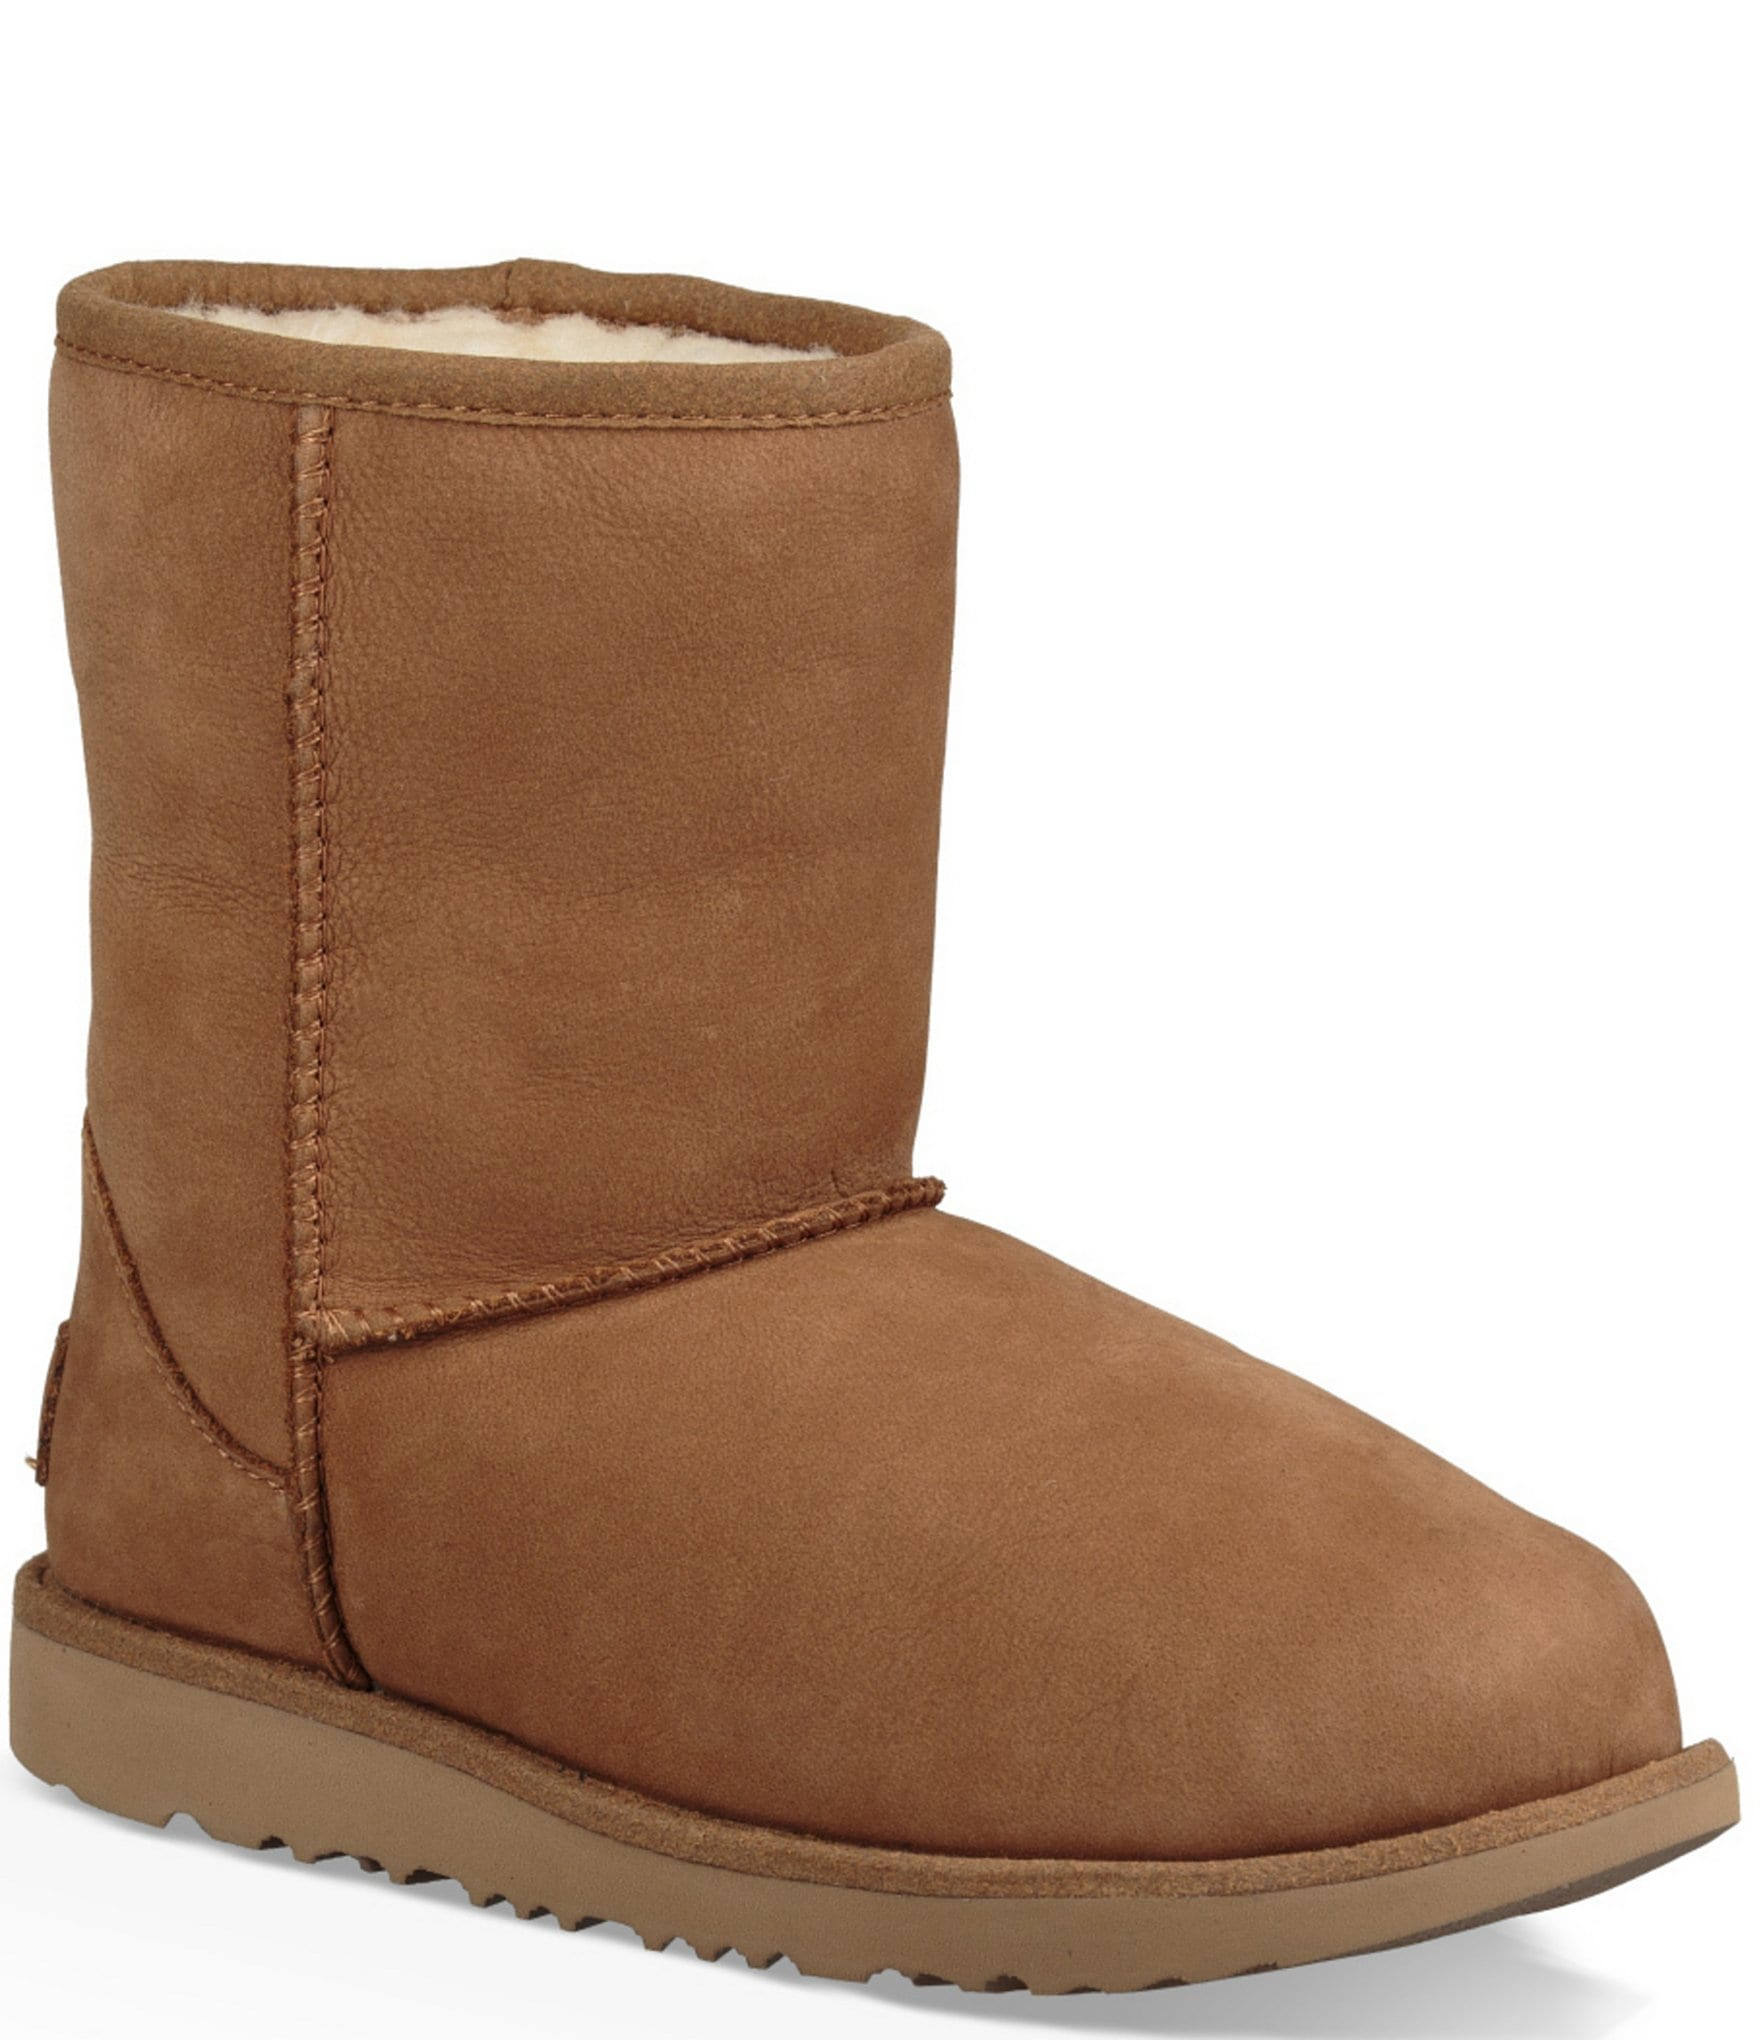 7b95dc11bf4 UGG® Girls' Classic Short II Waterproof Boots